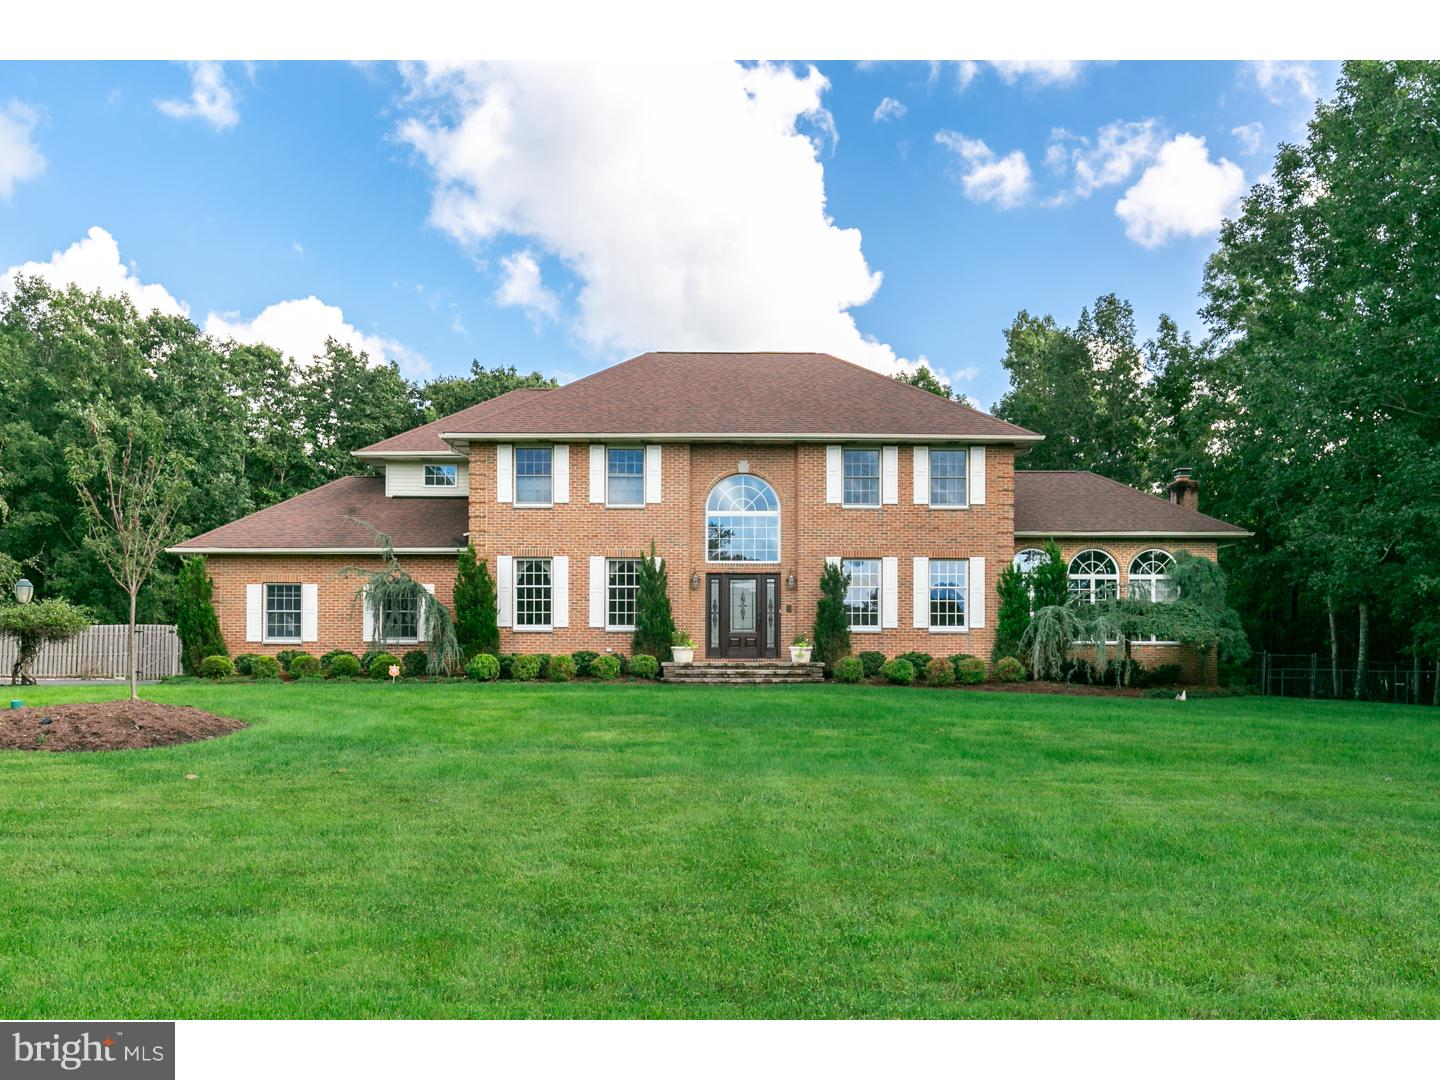 Single Family Home for Sale at 30 FOX HILL Drive Tabernacle, New Jersey 08088 United States